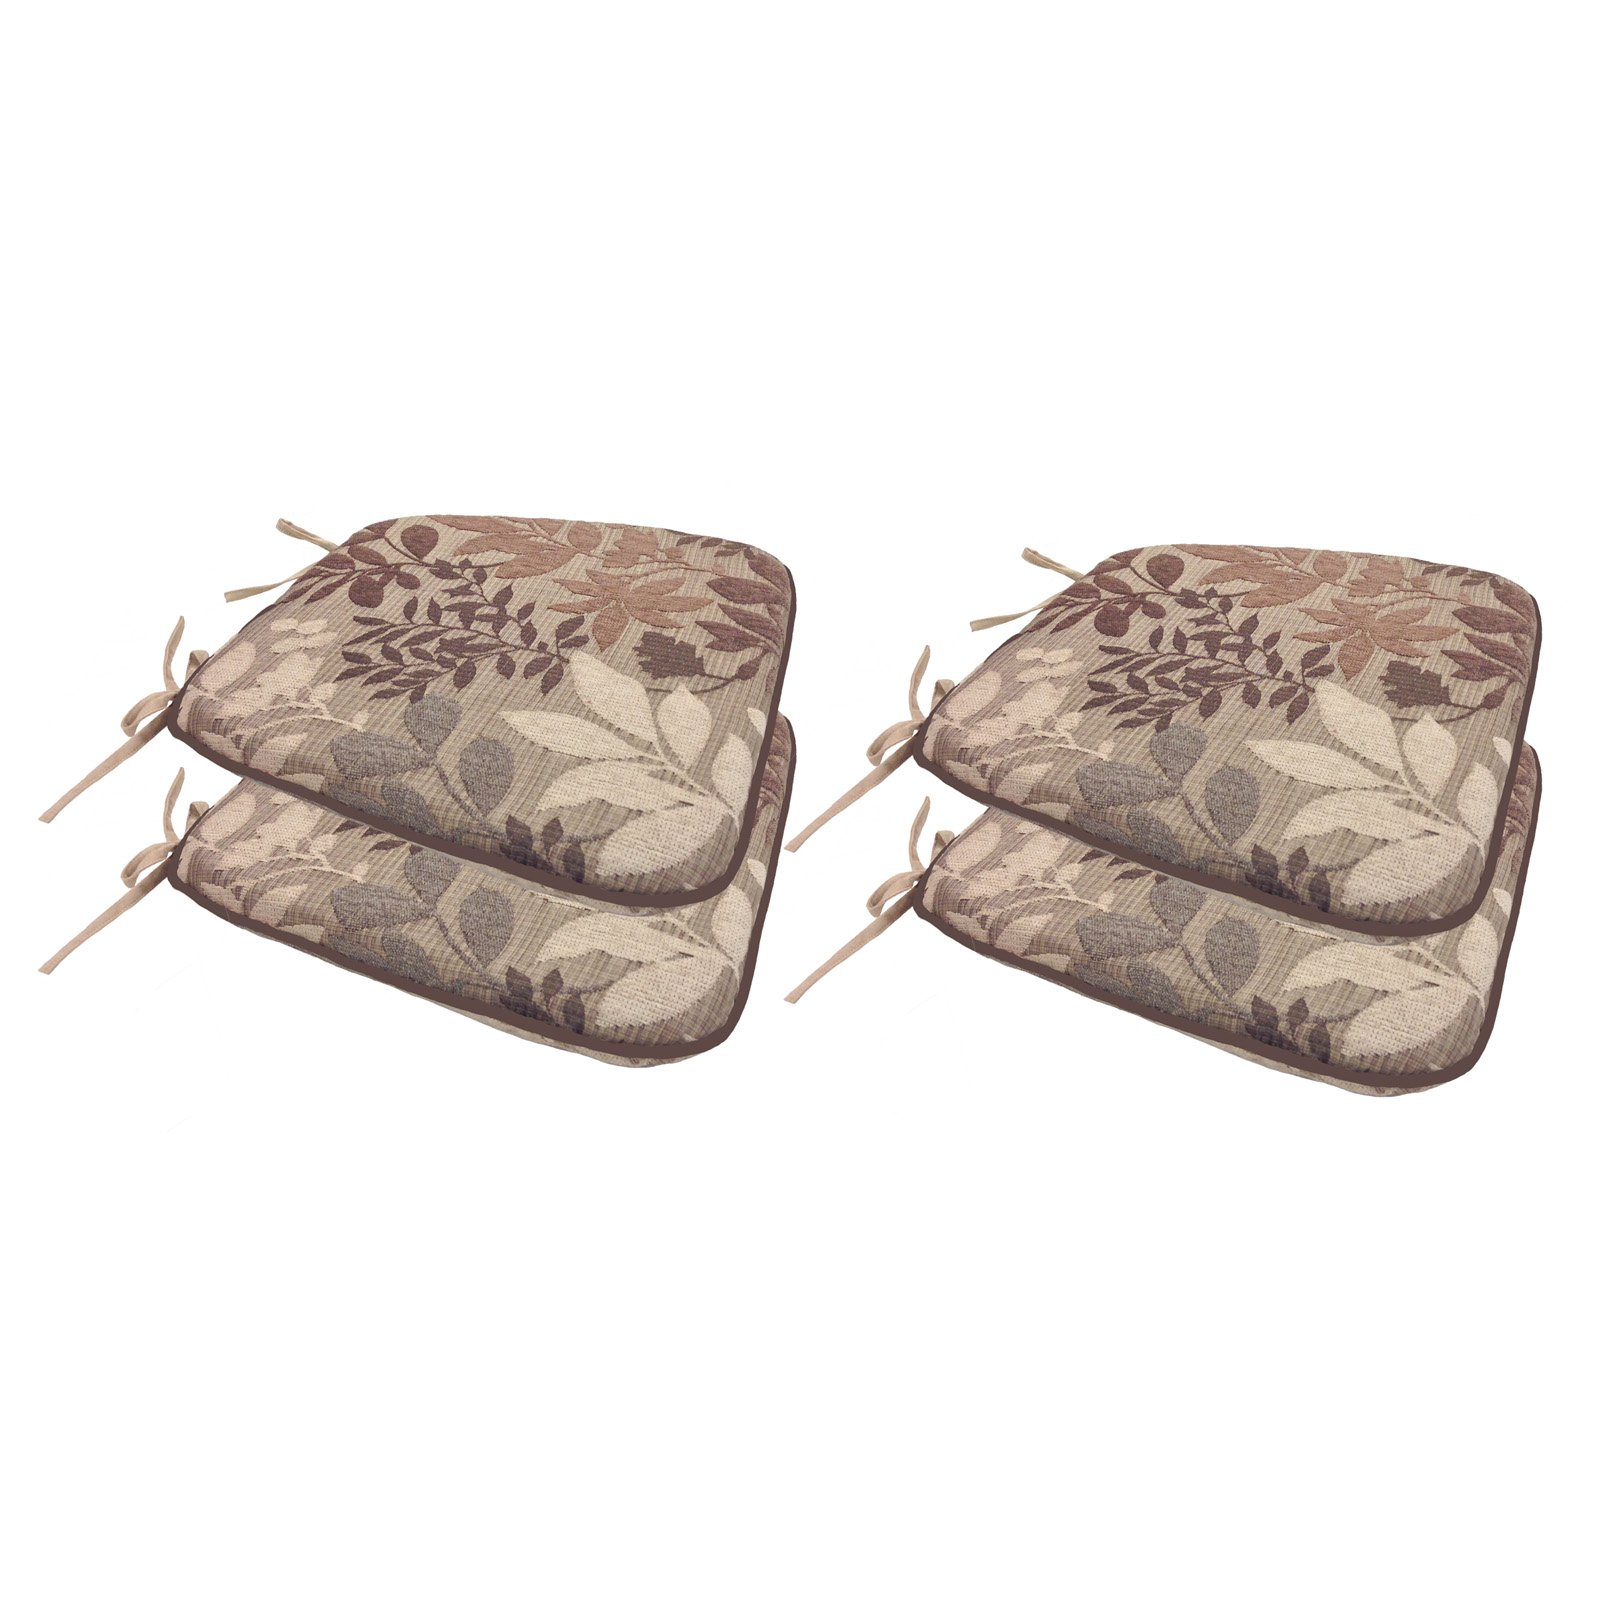 Arlee 16 x 15.5 in. Reversible Bristol Foam Chenille Leaf Jacquard Chair Pad Set of 4 by Arlee Home Fashions Inc